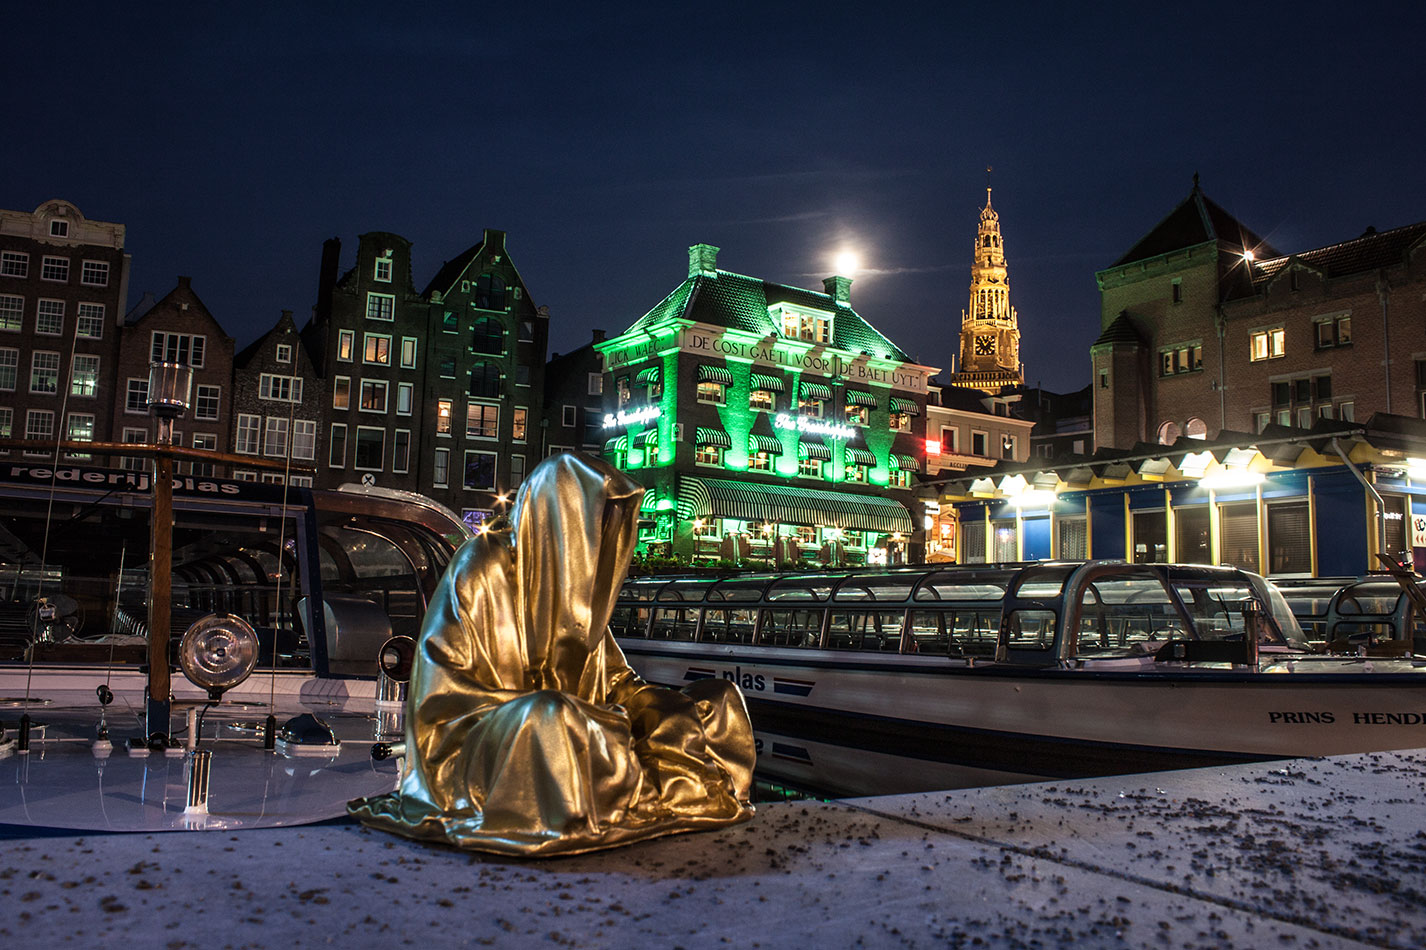 amstadam-netherlands-guardians-of-time-manfred-kielnhofer-public-modern-contemporary-art-fine-arts-sculpture-design-streat-art-2142